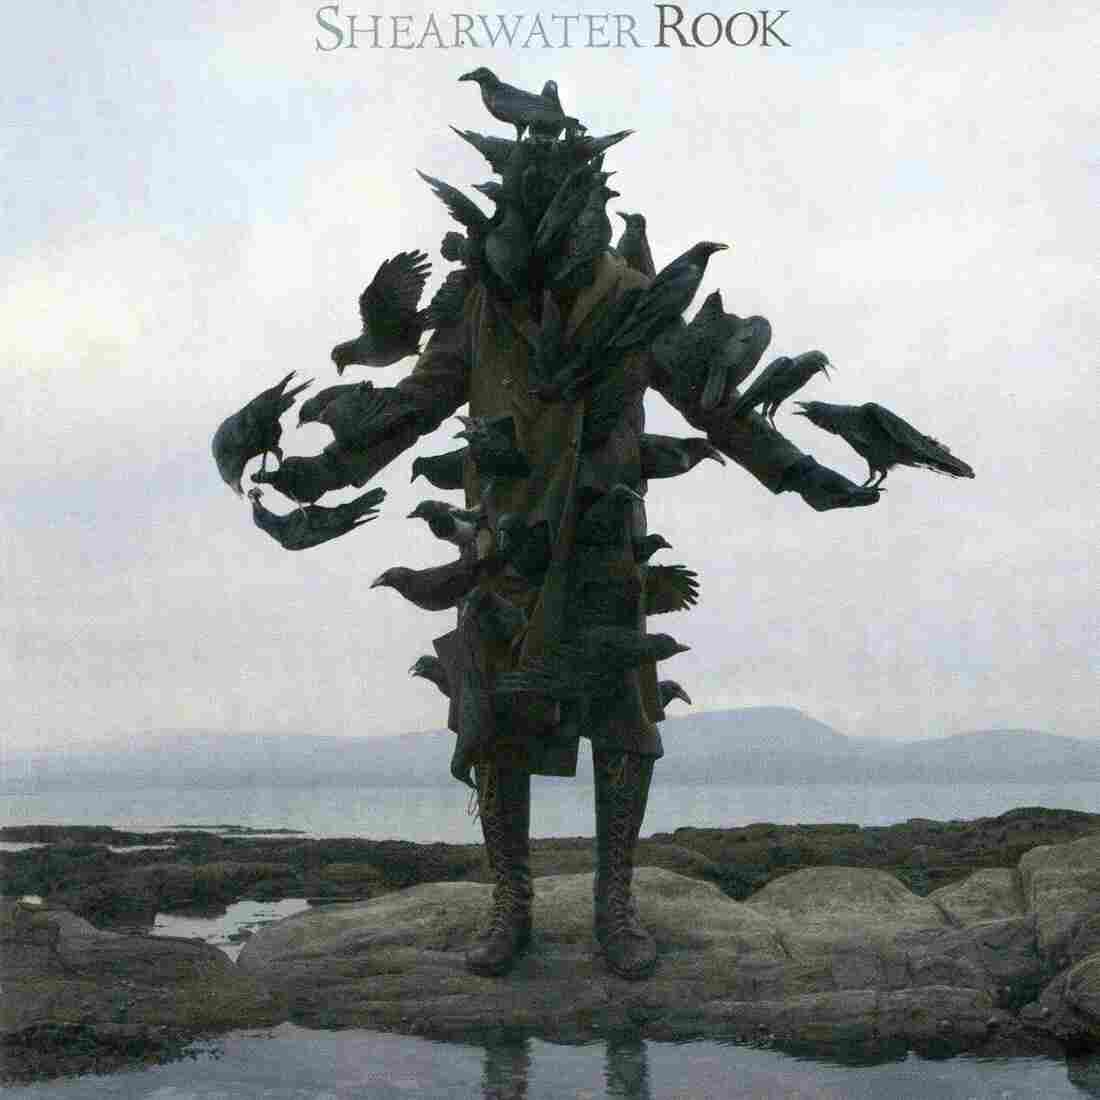 Shearwater's Rook cover